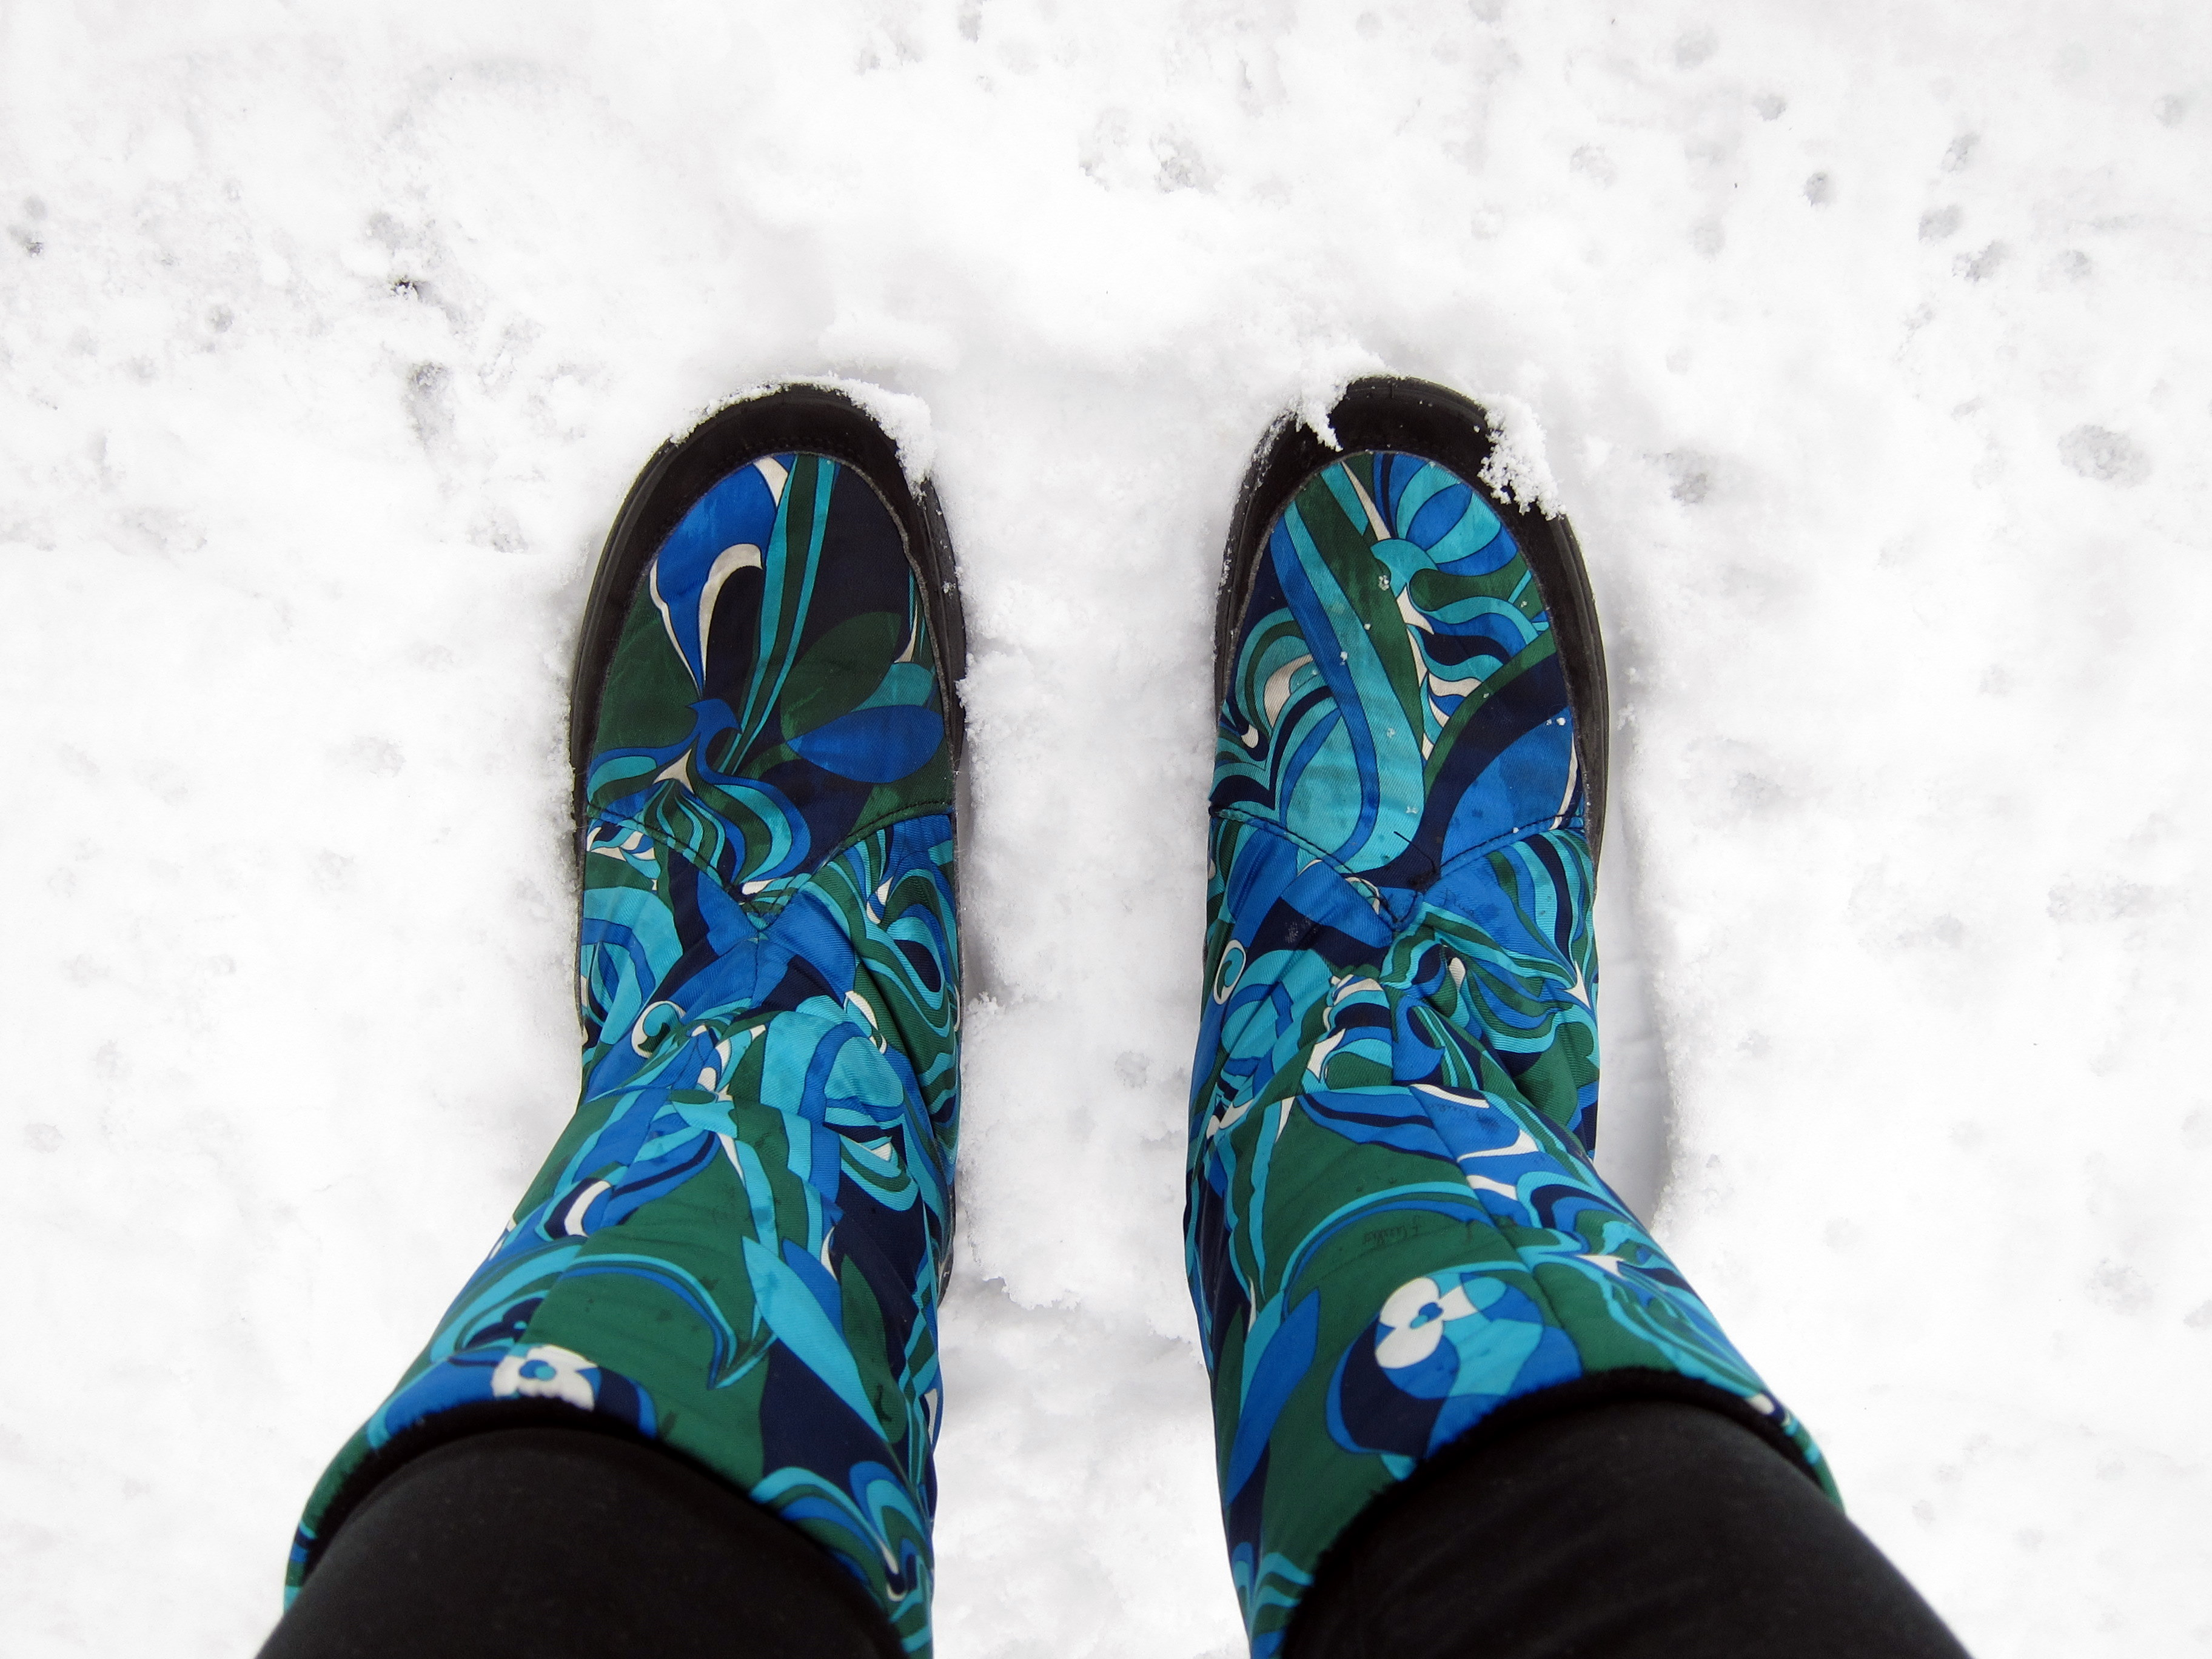 snow boots image